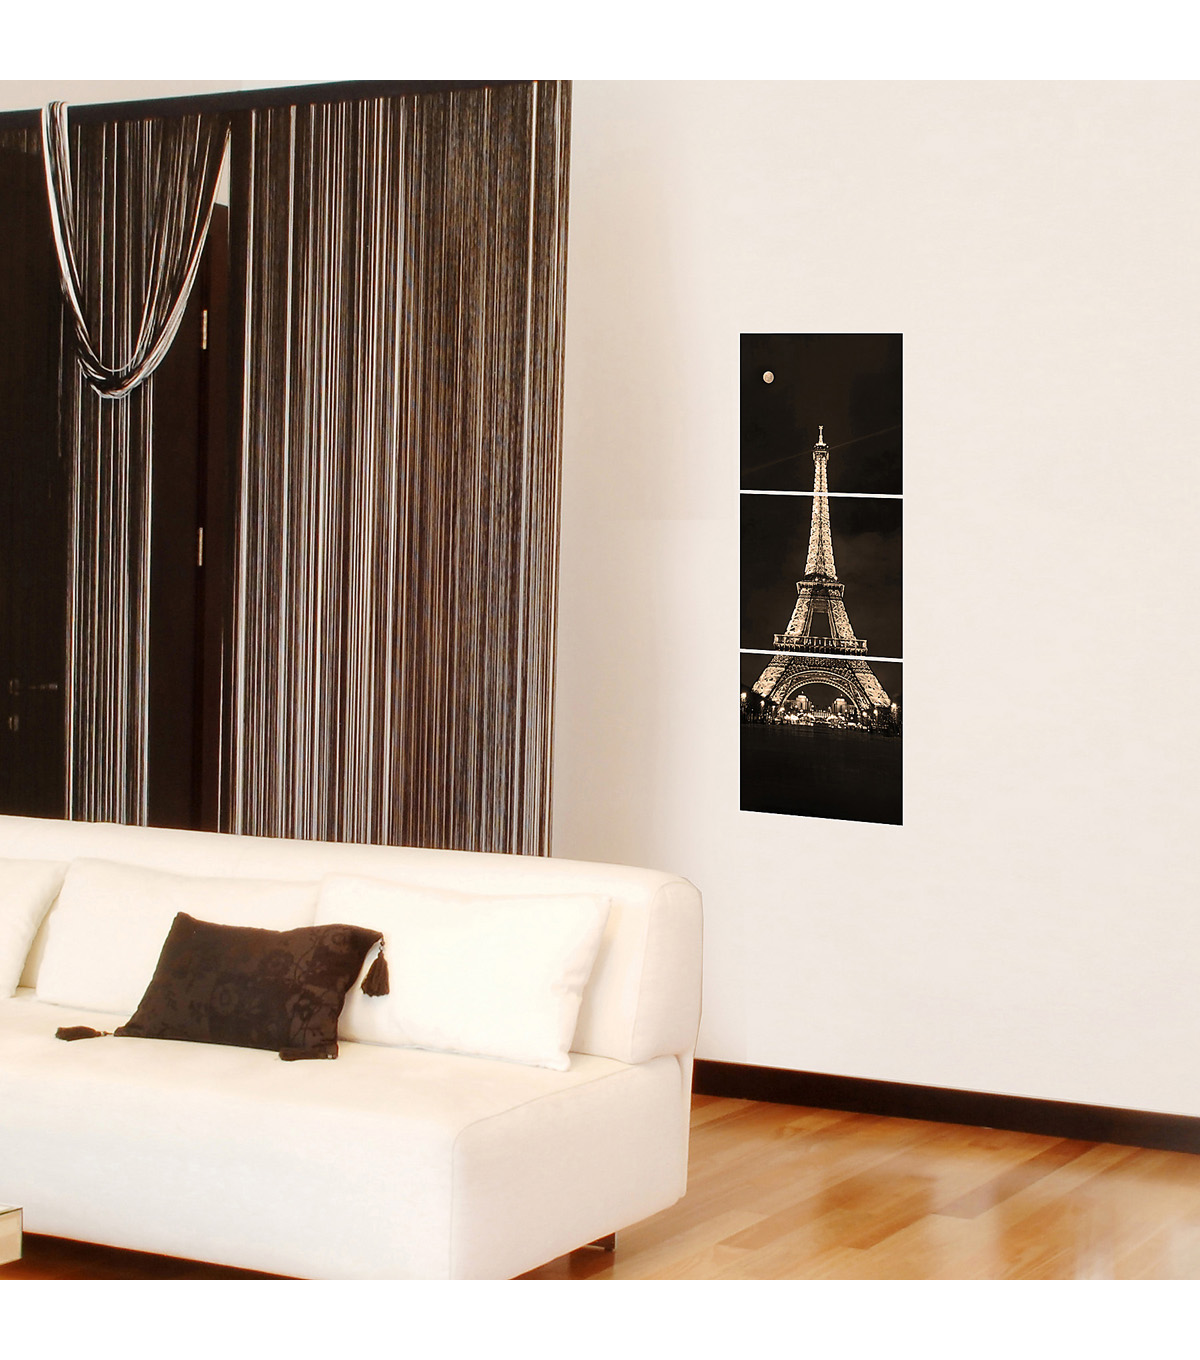 Home Decor Eiffel Tower Panoramic Wall Decal, 3 Piece Set